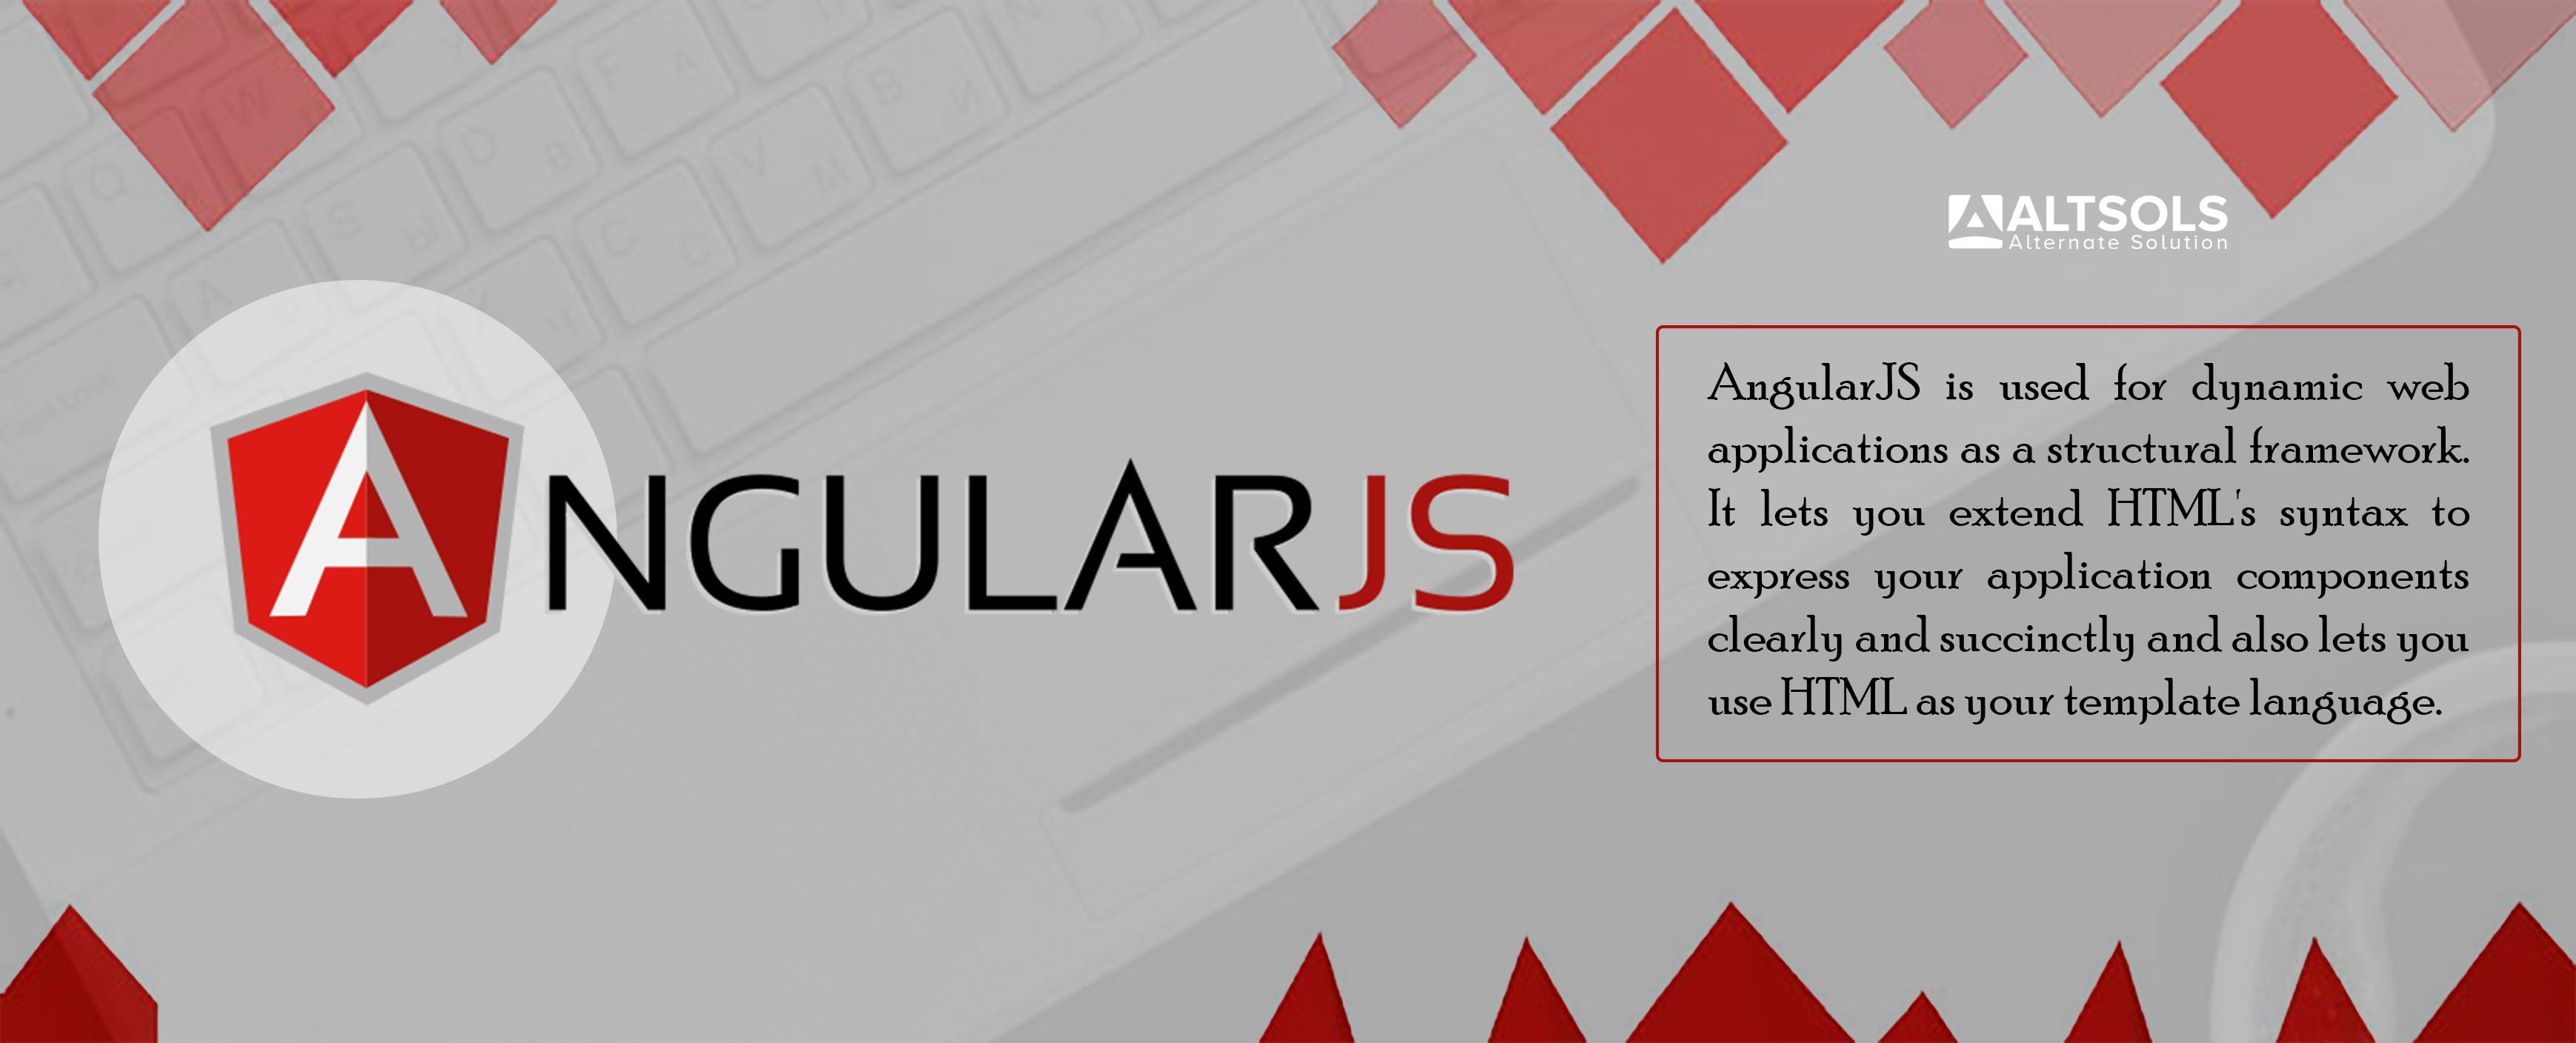 Angularjs Is Used For Dynamic Web Applications As A